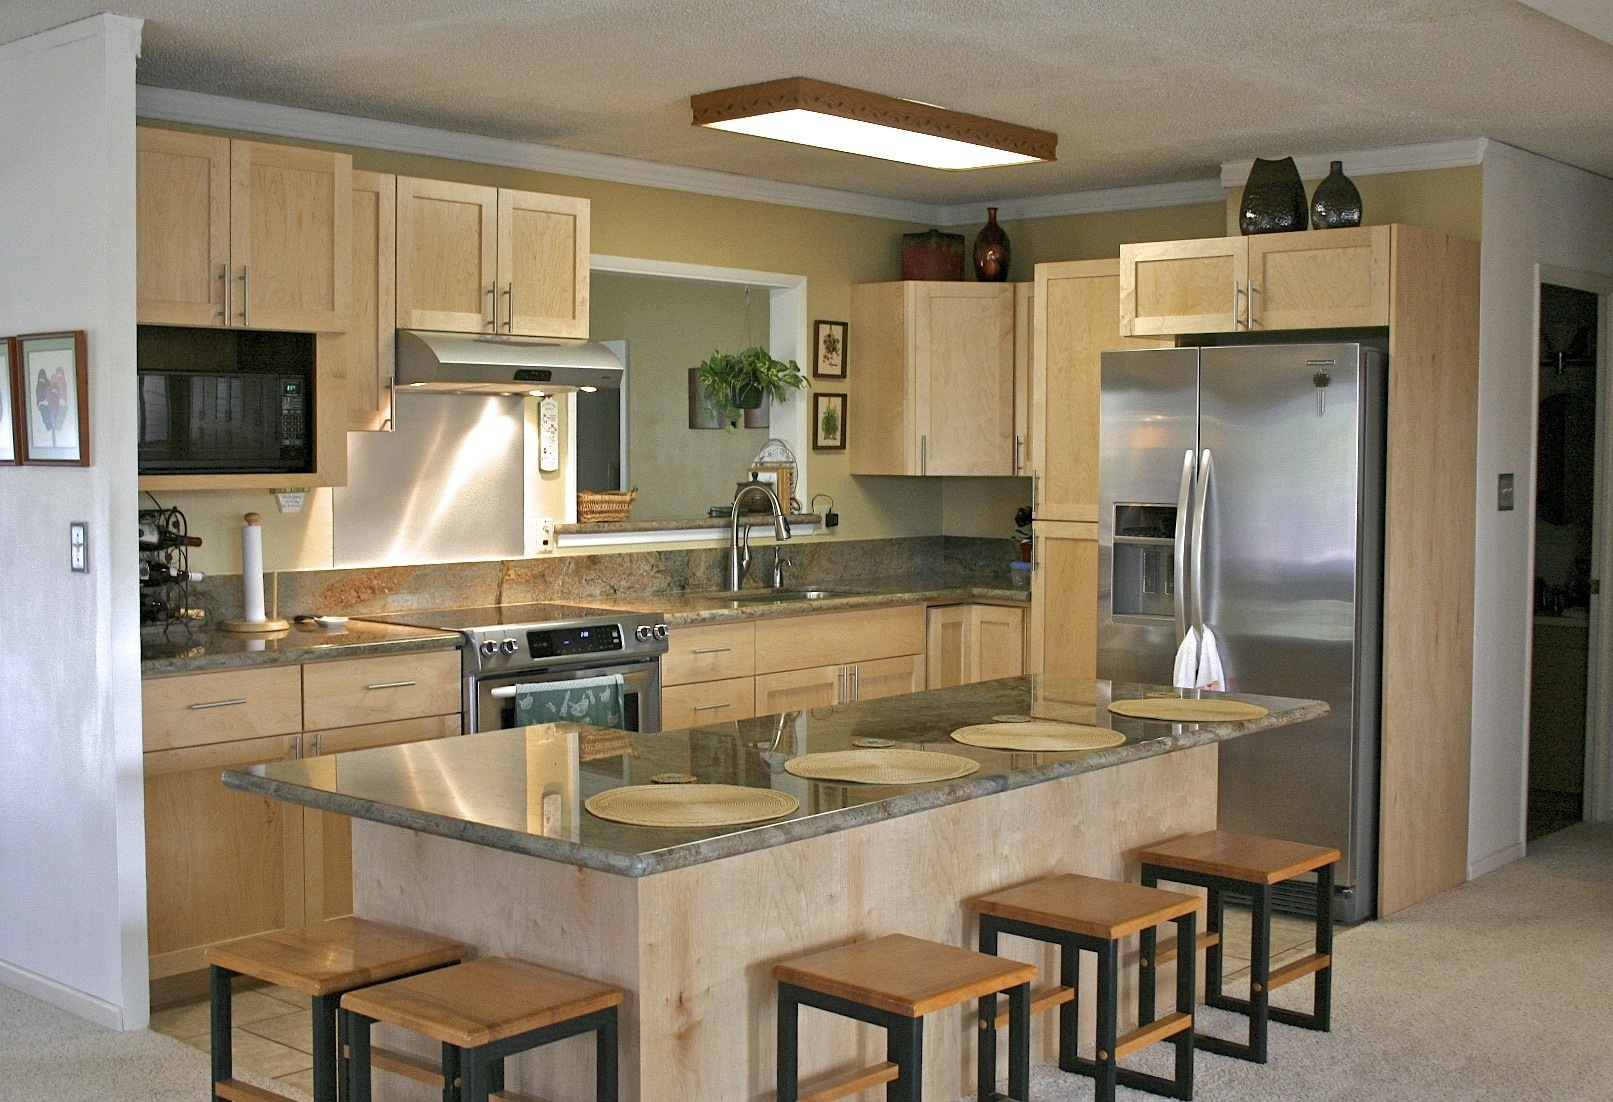 Kitchen Design Cabinet Supplier Commercial Cabinetry Kendall Kitchen Cabinets